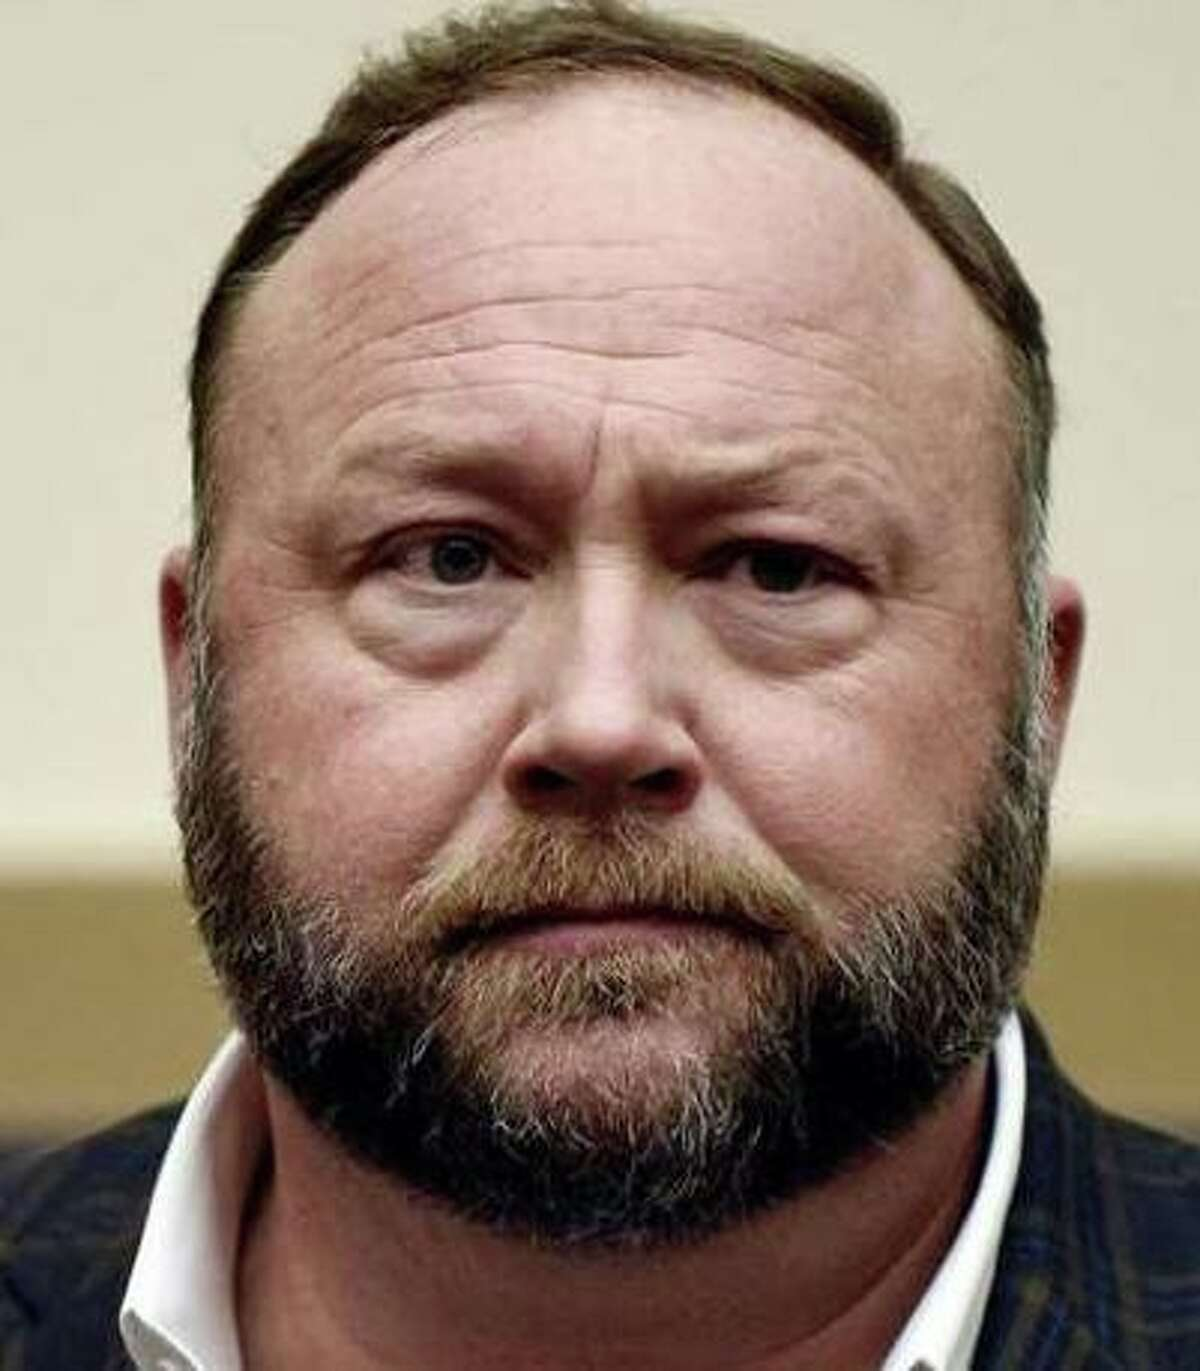 Infowars founder Alex Jones attends a hearing before the House Judiciary committee on Capitol Hill on December 11, 2018, in Washington, D.C.